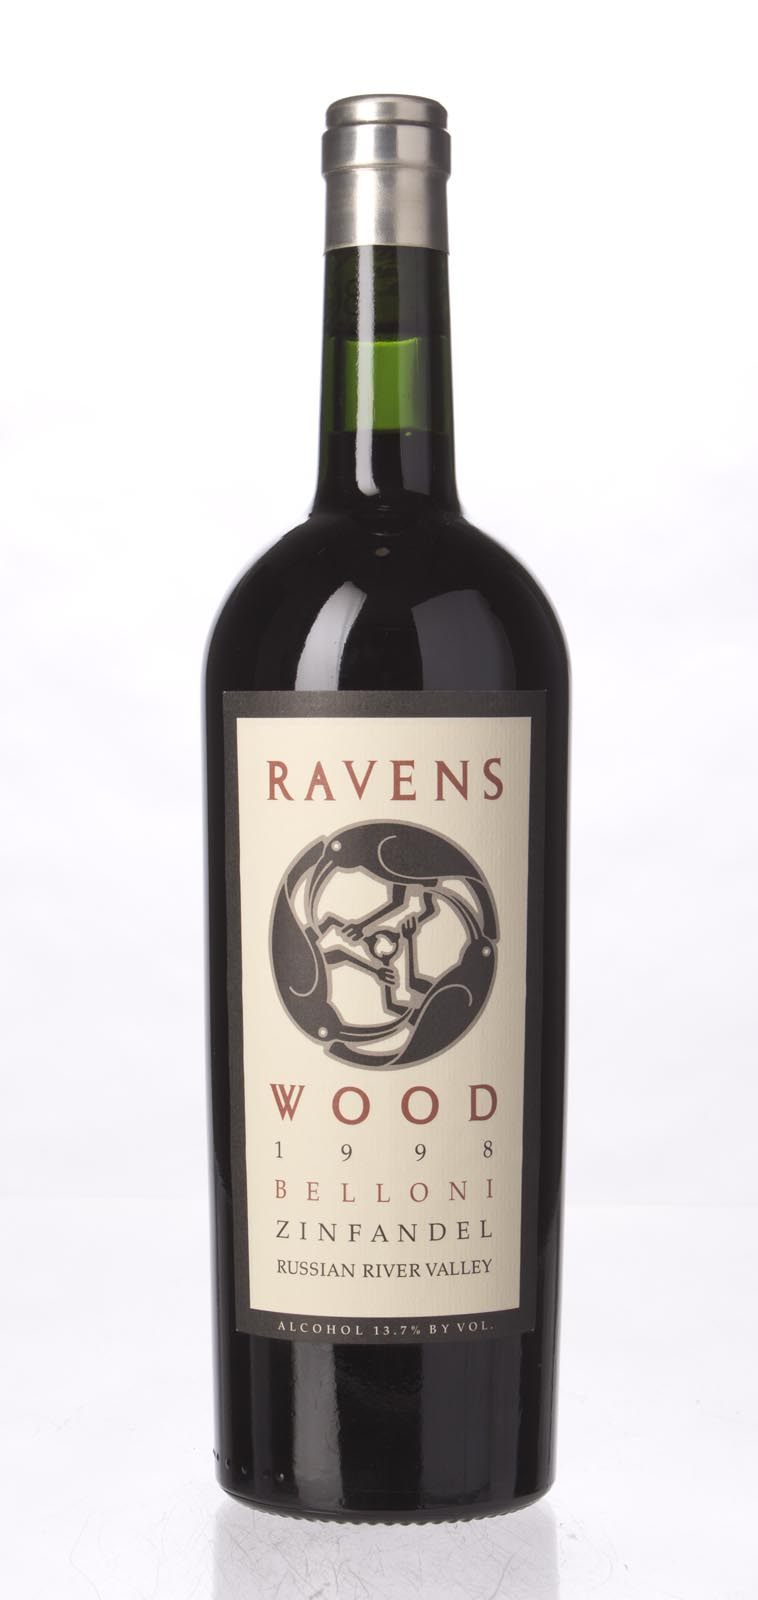 Ravenswood Zinfandel Wood Road Belloni 1998, 750mL () from The BPW - Merchants of rare and fine wines.